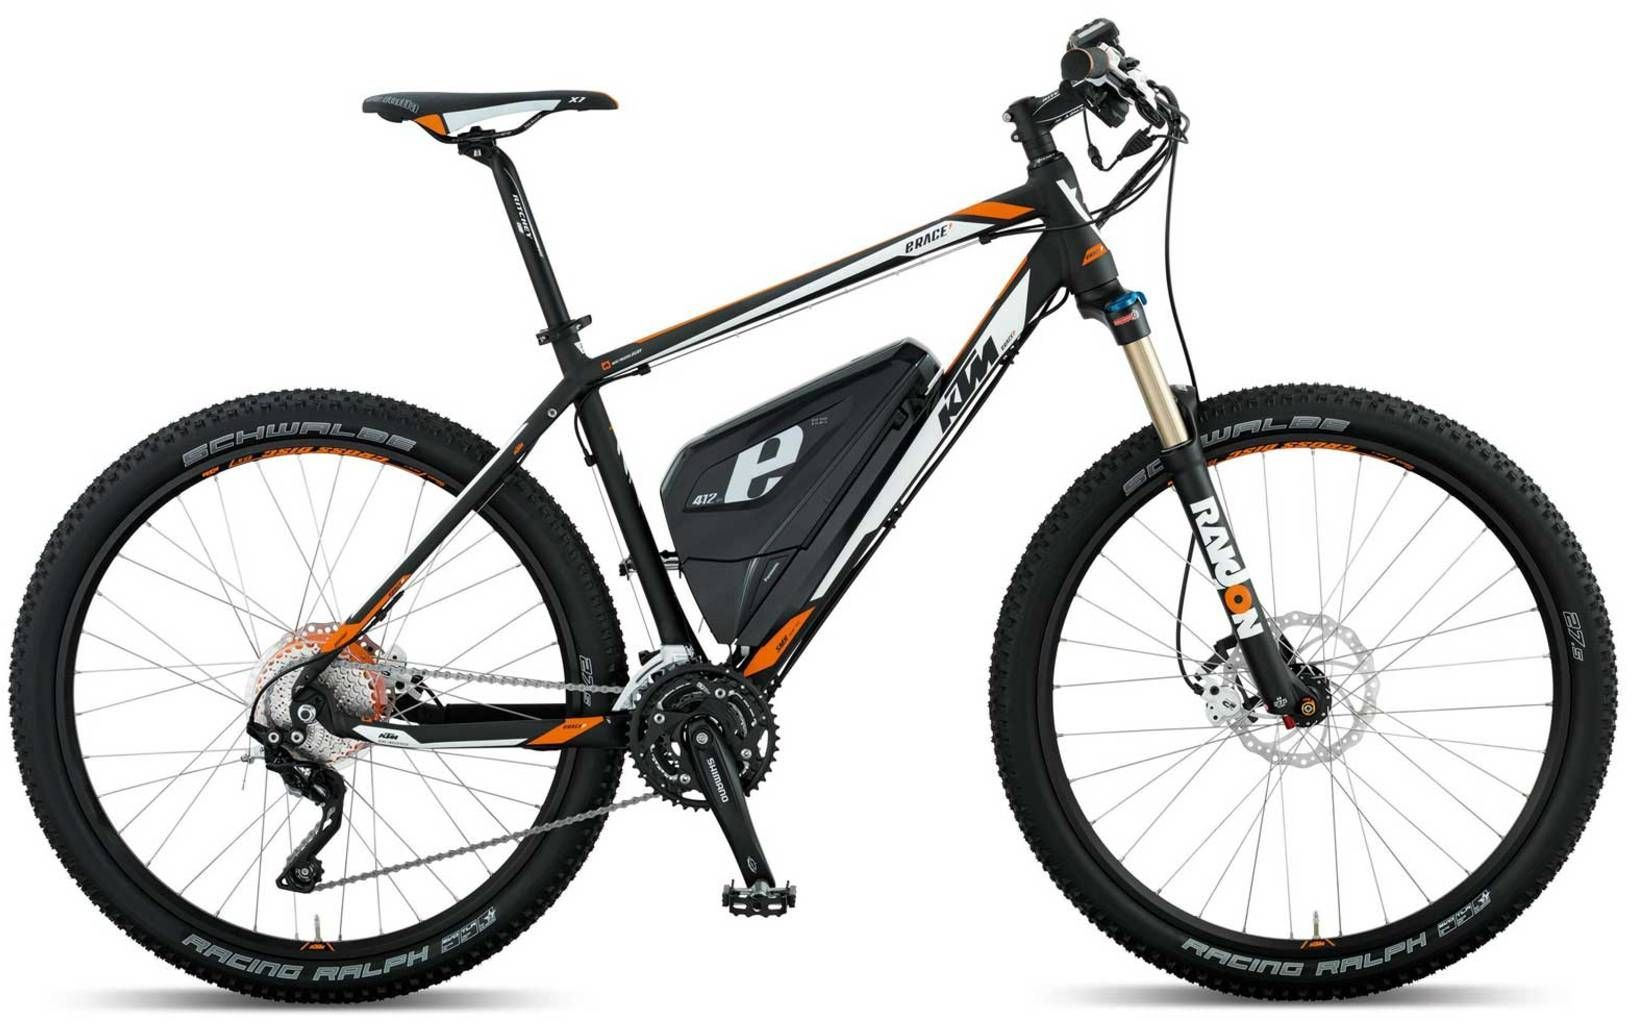 ktm e race p 27 5 2014 review the bike list. Black Bedroom Furniture Sets. Home Design Ideas